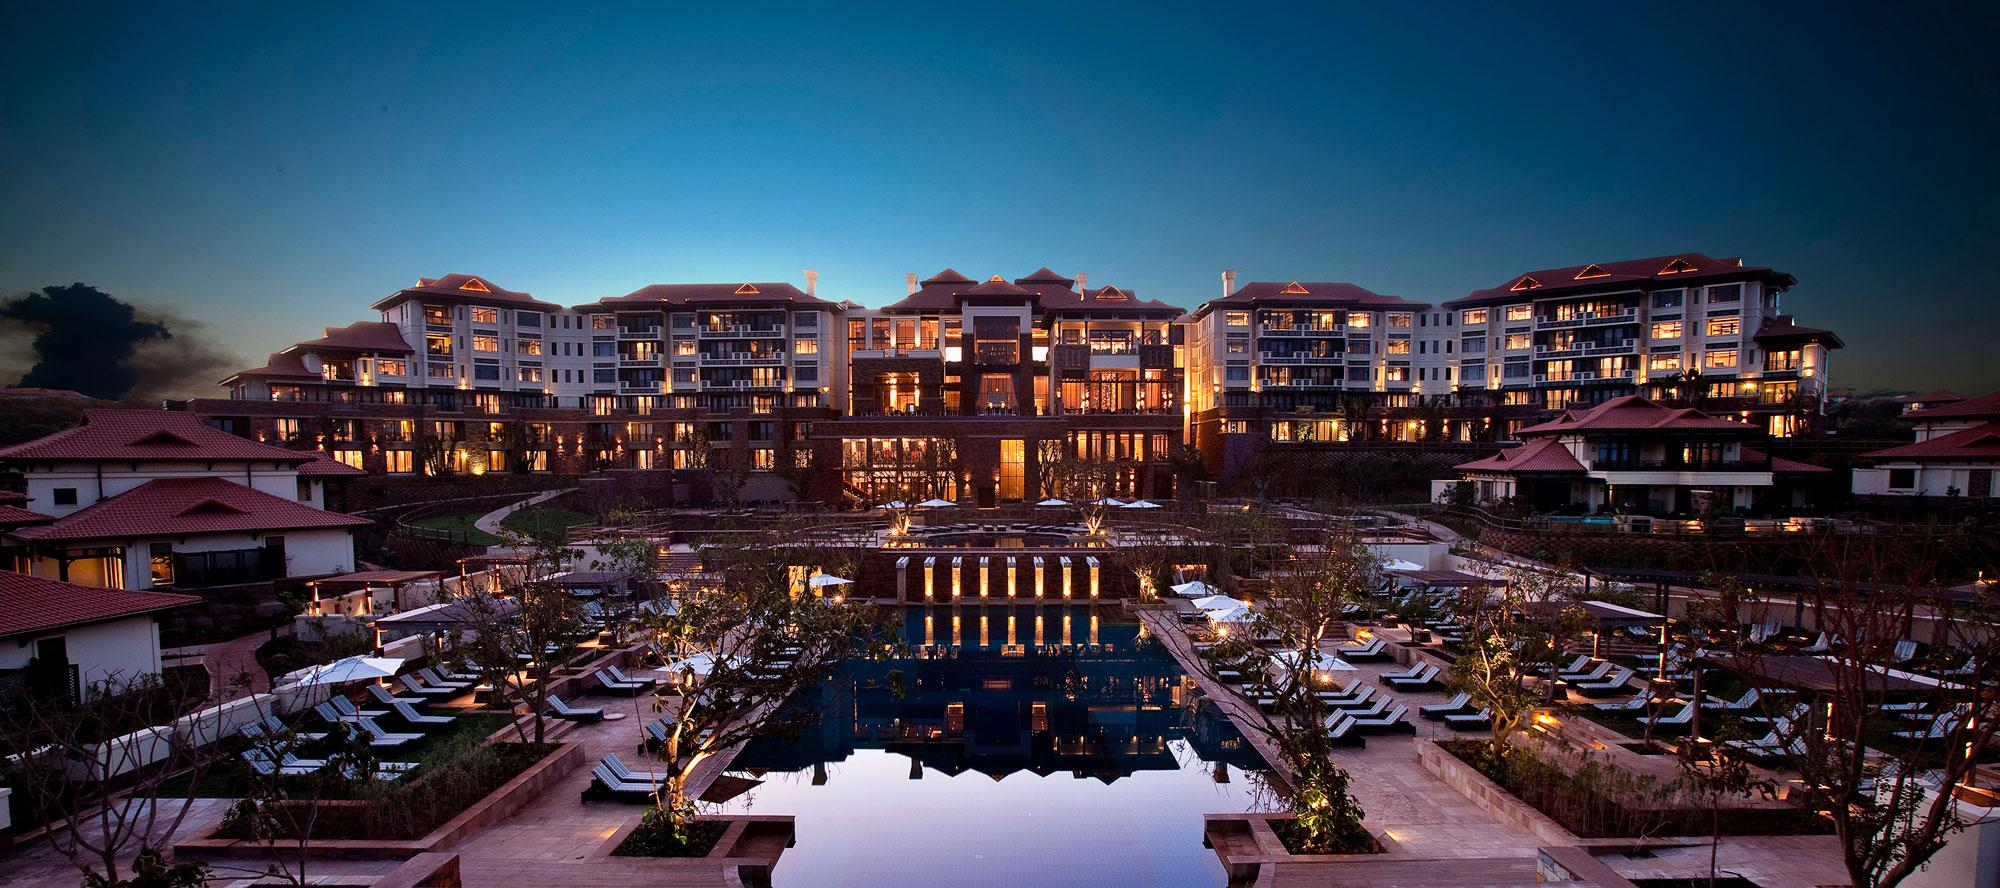 The Fairmont Zimbali Resort's picturesque hotel situated in sensational South Africa.